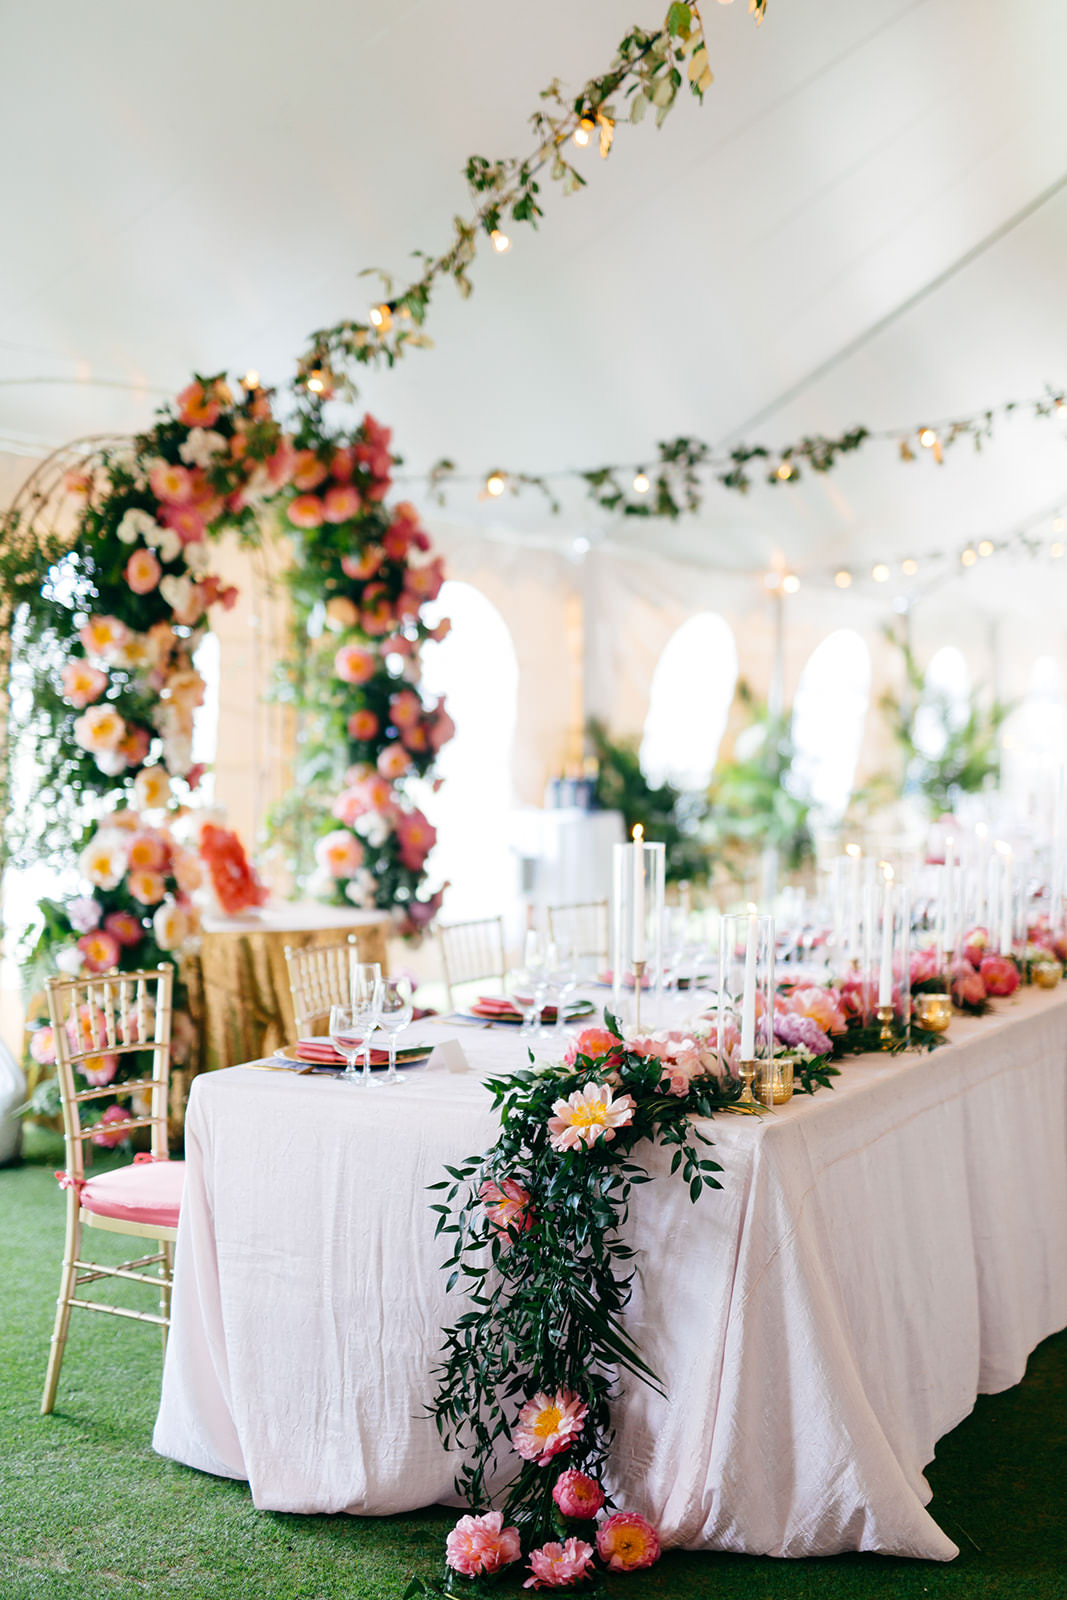 Elegant Tropical Tent Wedding Reception Decor, Pink and Coral with Greenery Floral Table Runner, Gold Chiavari Chairs with Pink Cushions   Tampa Bay Wedding Planner NK Weddings